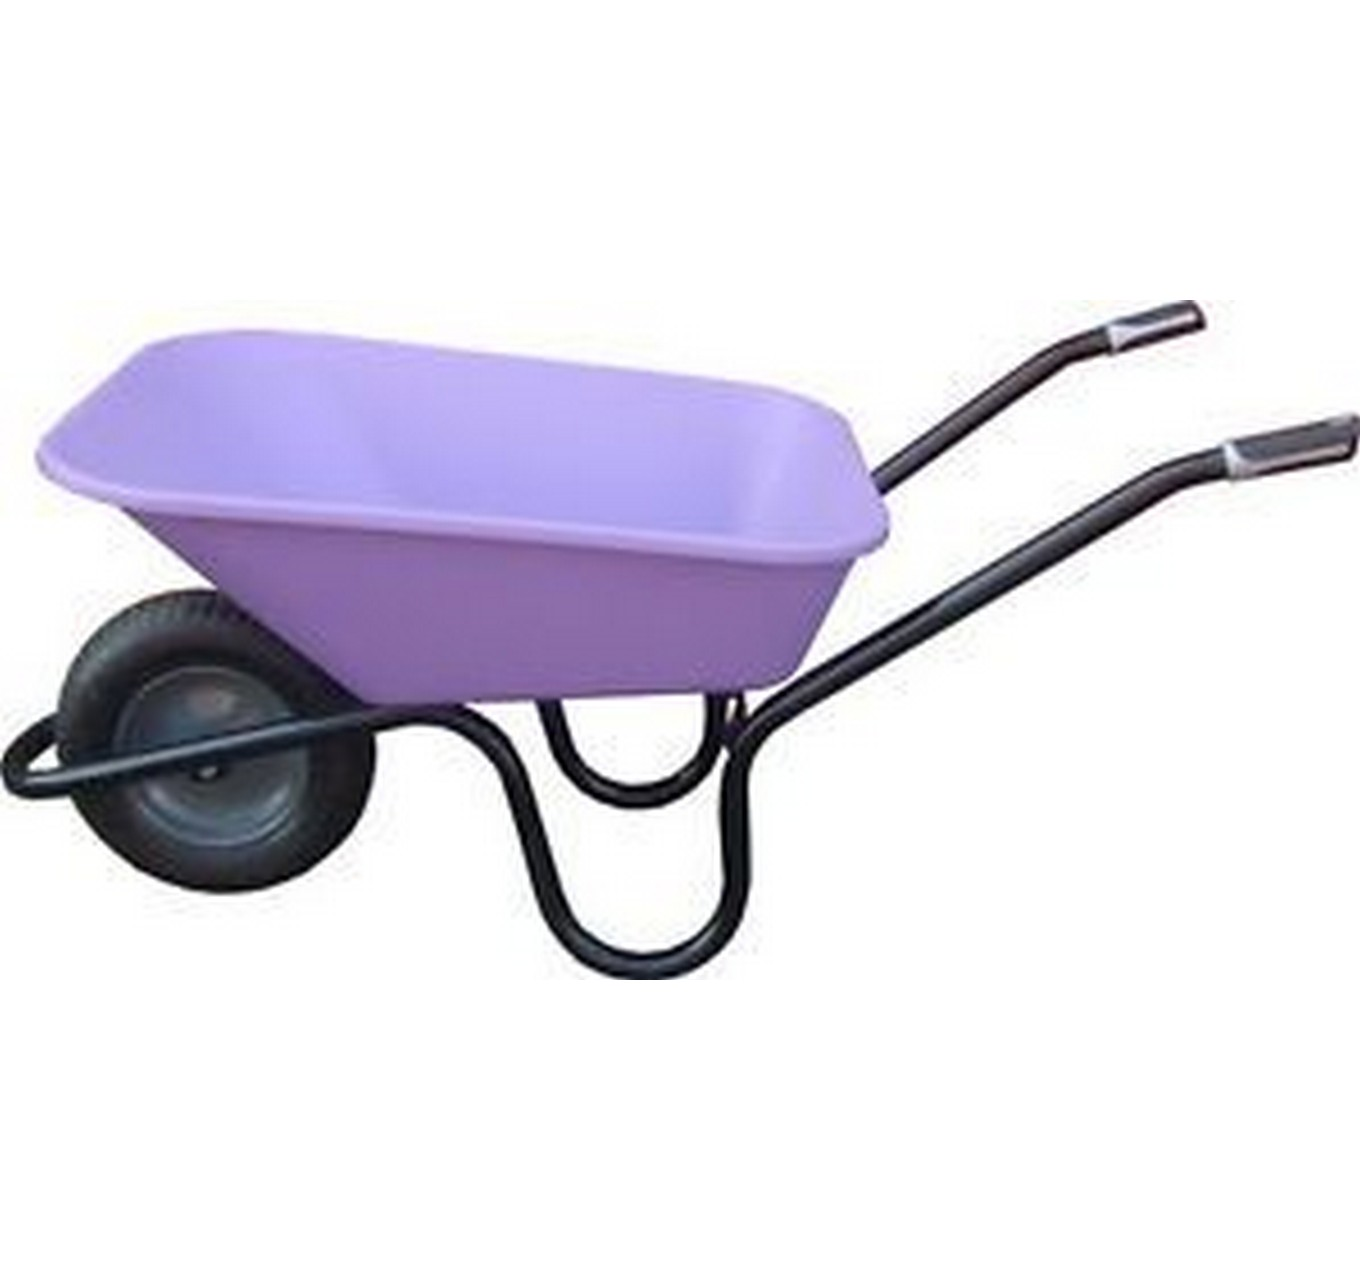 90ltr Lilac Poly Wheelbarrow